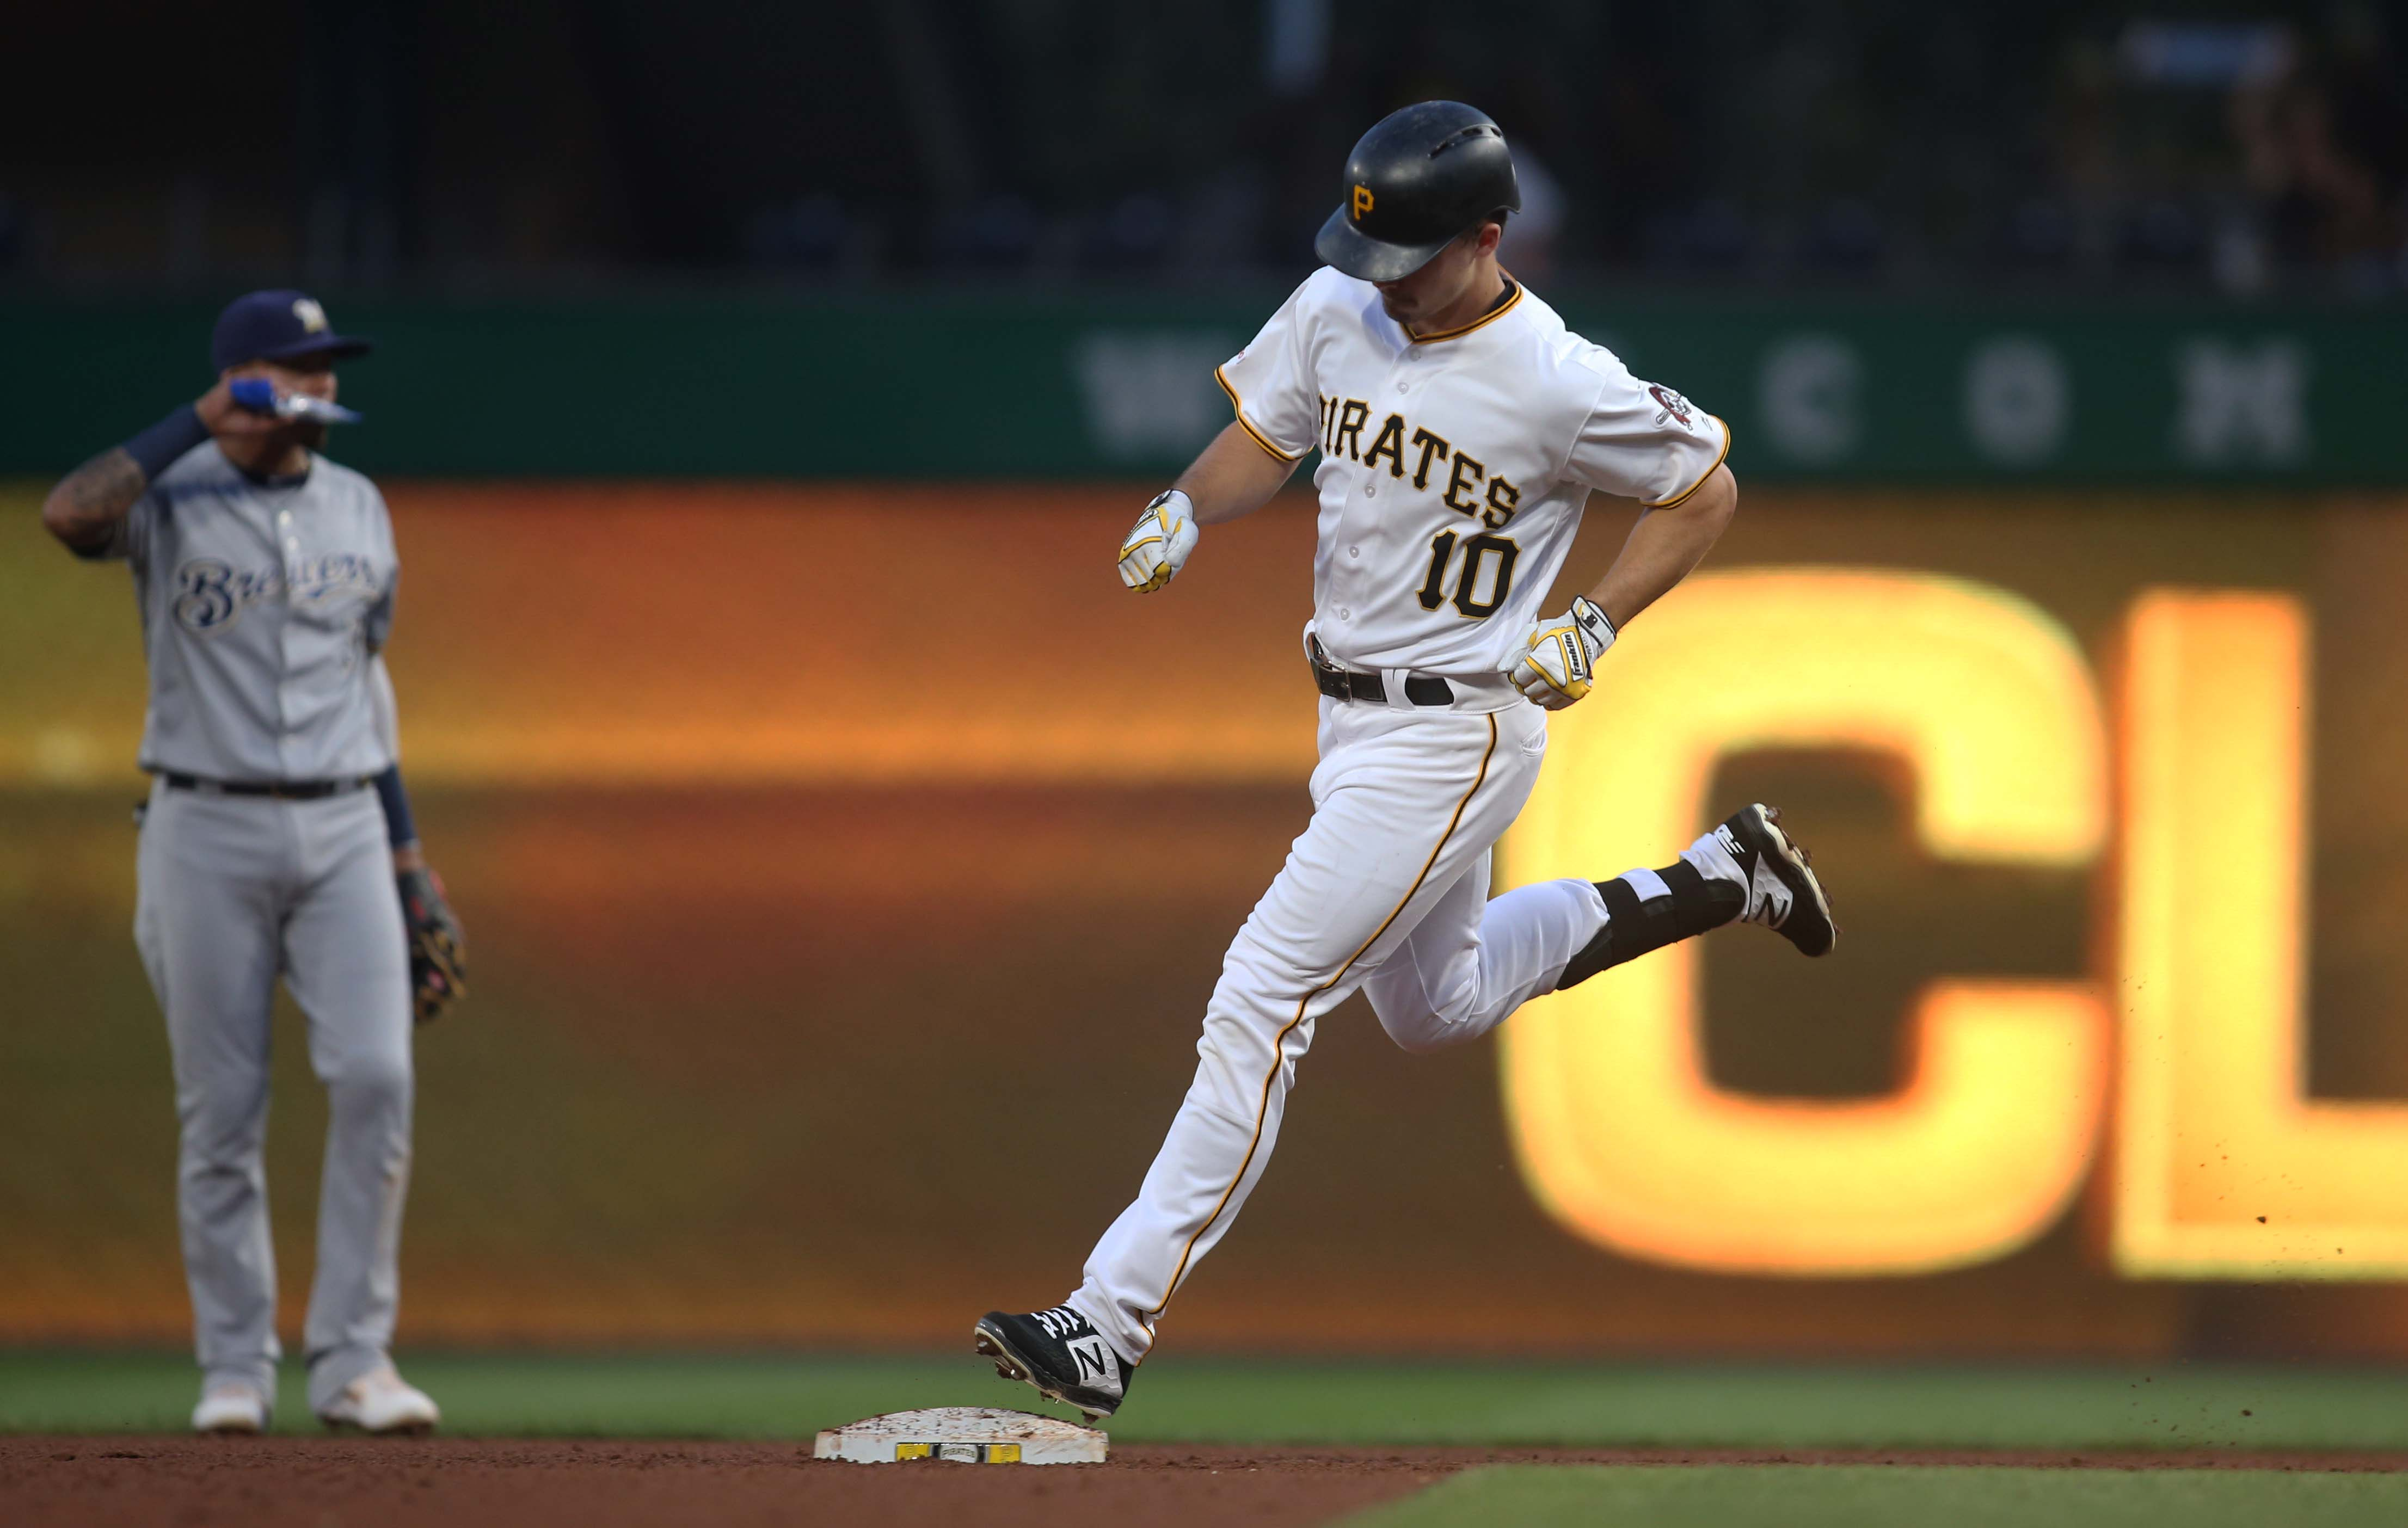 Pirates Baseball Schedule 2020 Pirates 2020 Schedule Released; Yanks, Red Sox Coming To